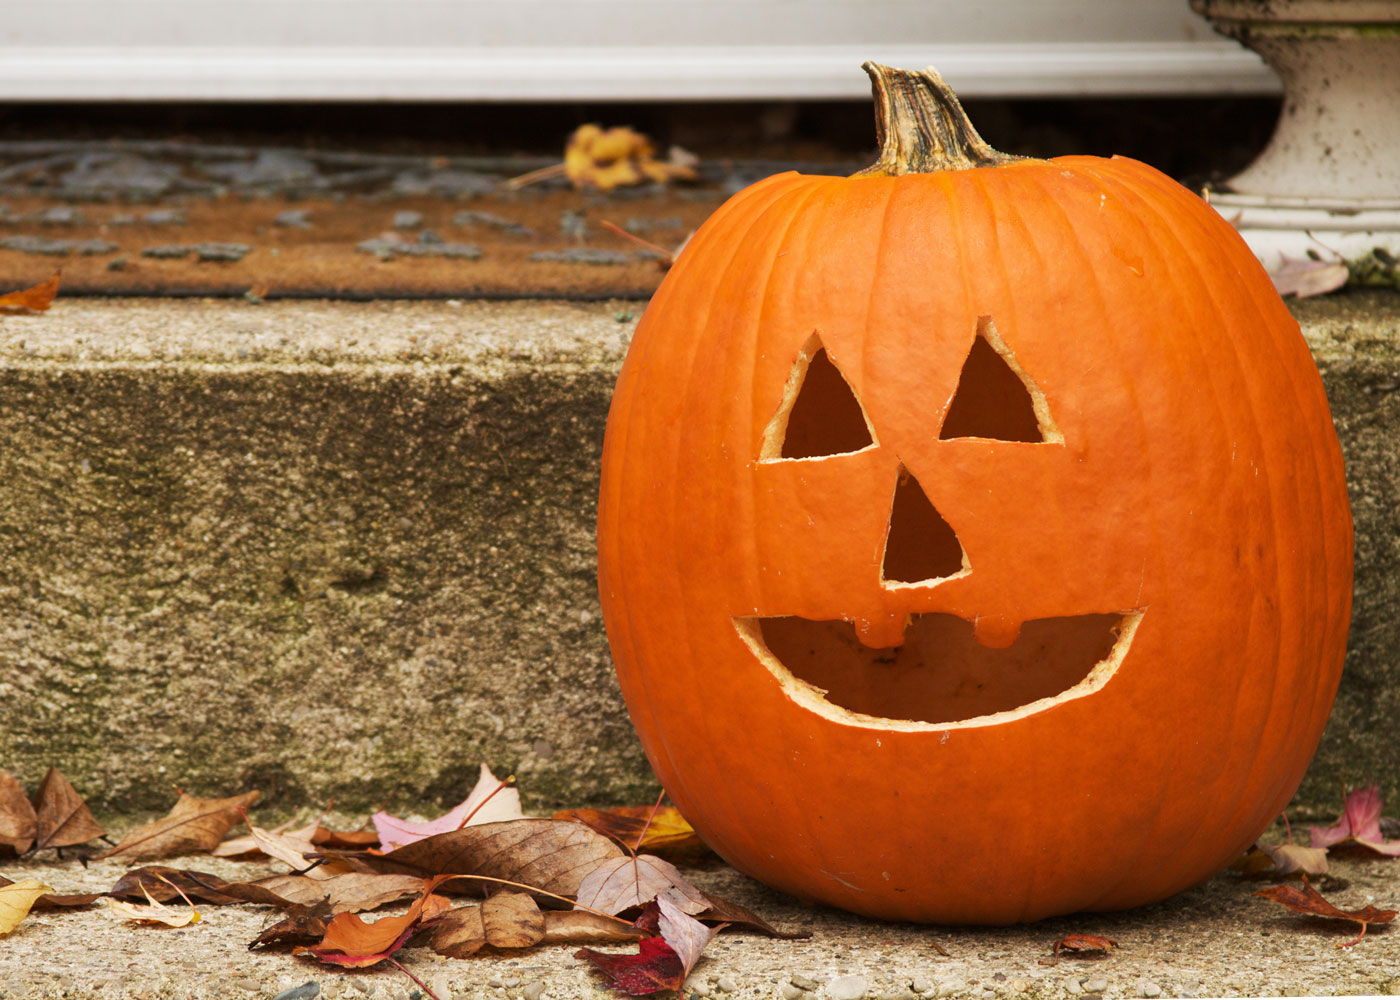 Where Did Halloween Come From? How Did It Originate? | A Little ...